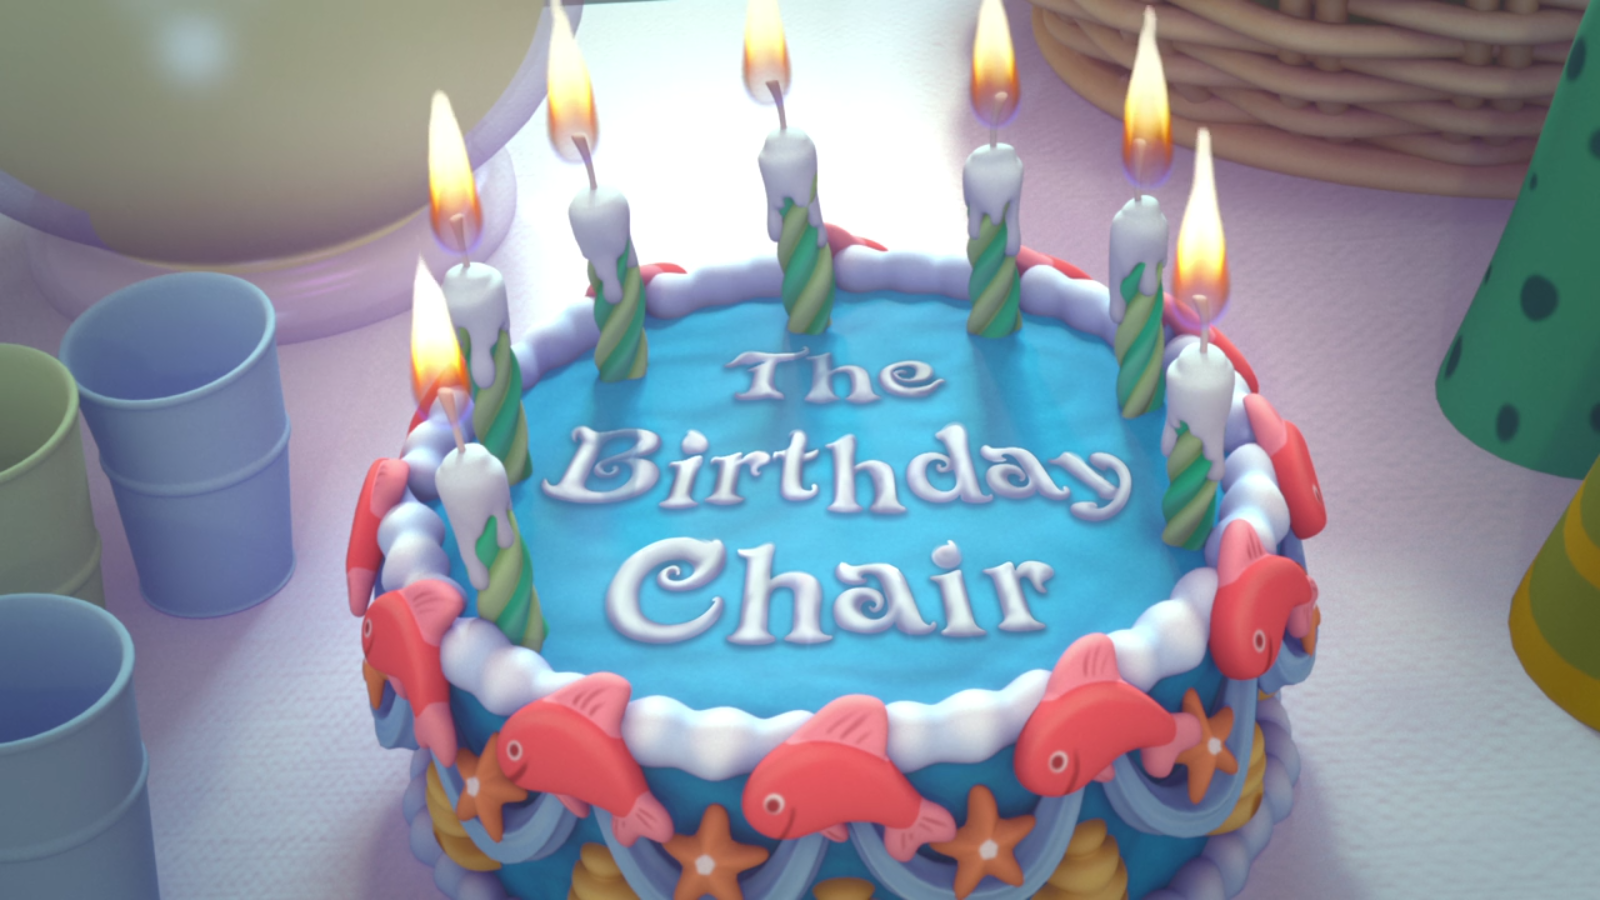 The Birthday Chair